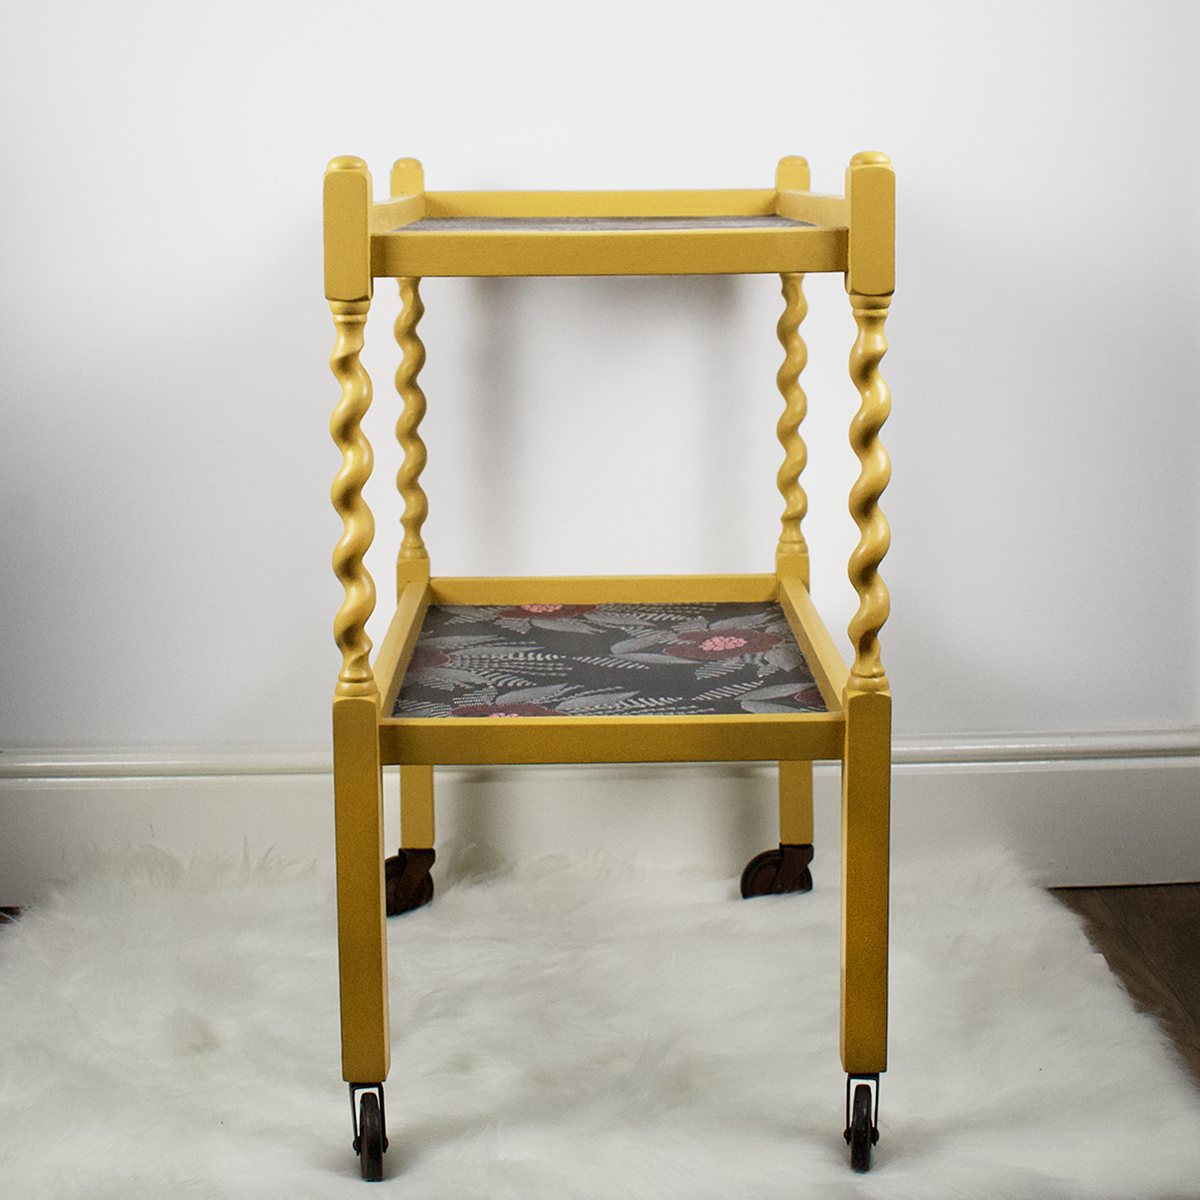 Vintage barley twist tea trolly, upcycled mustard yellow